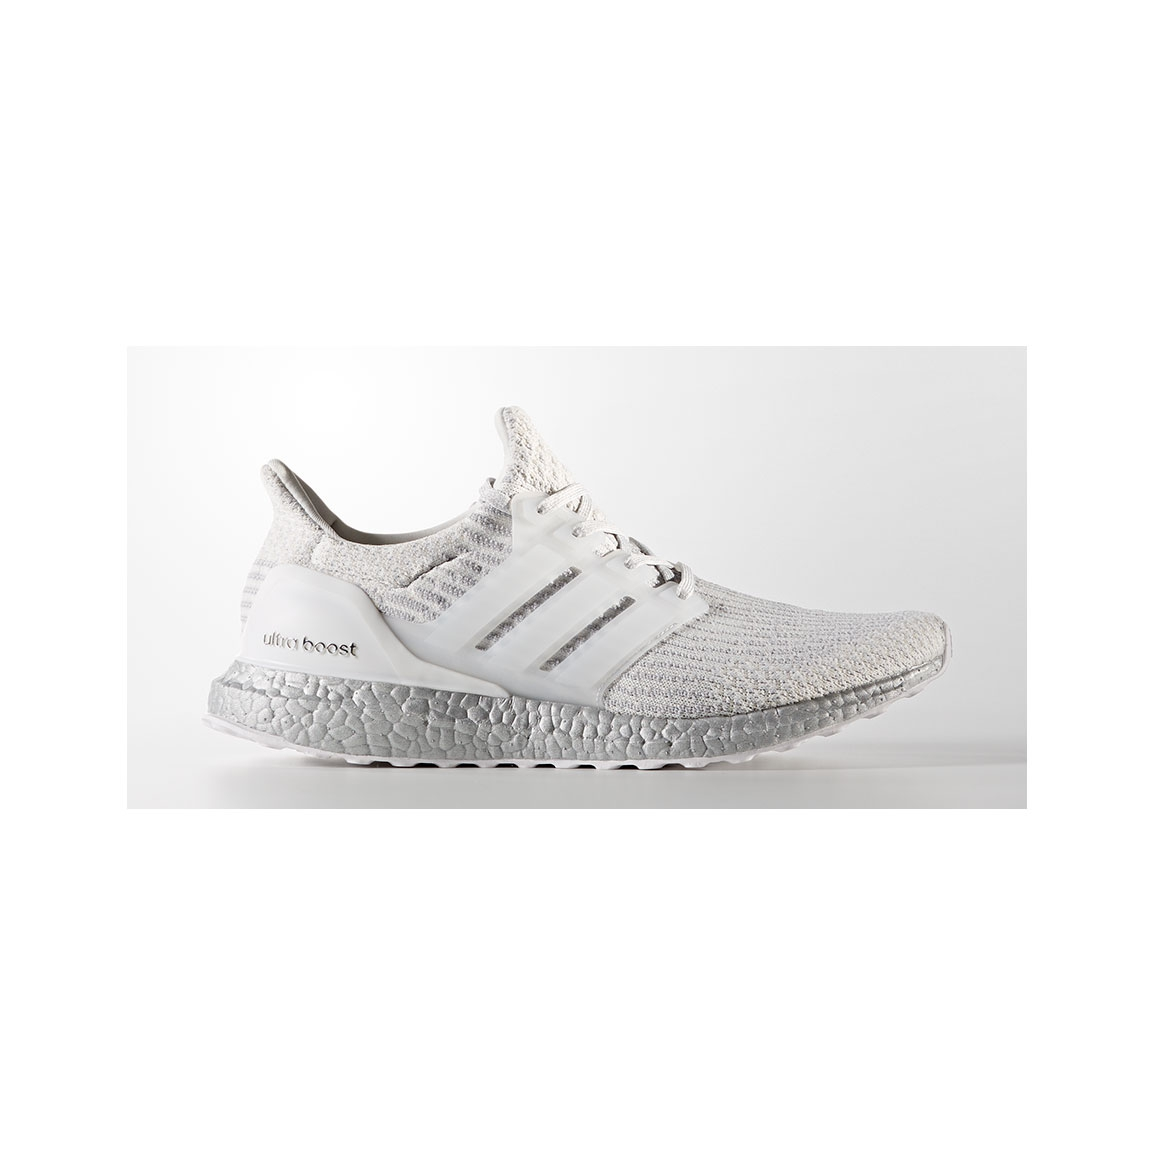 Men's Adidas UltraBOOST 3.0 LTD - Color: Crystal White/Crystal White/S..